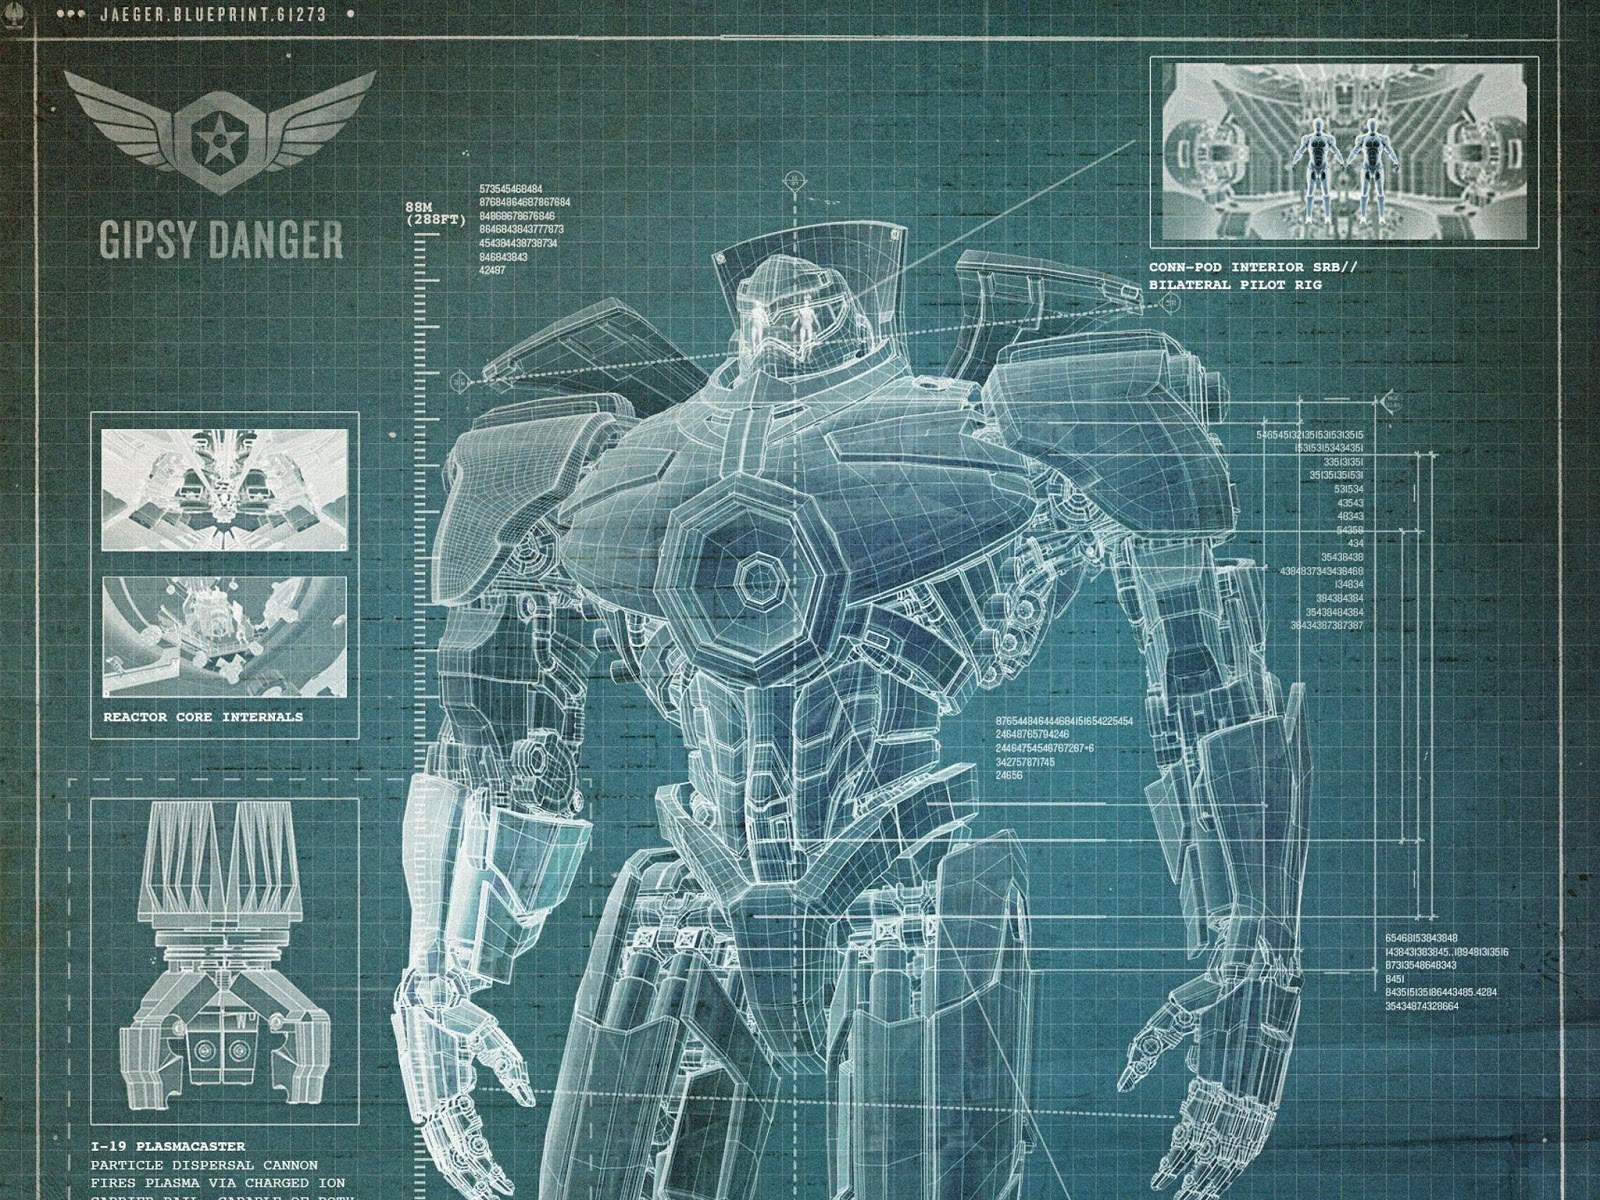 Pacific Rim Gypsy Danger Art Full HD Wallpaper Wallpaperrs - pacific rim gypsy danger art wallpapers